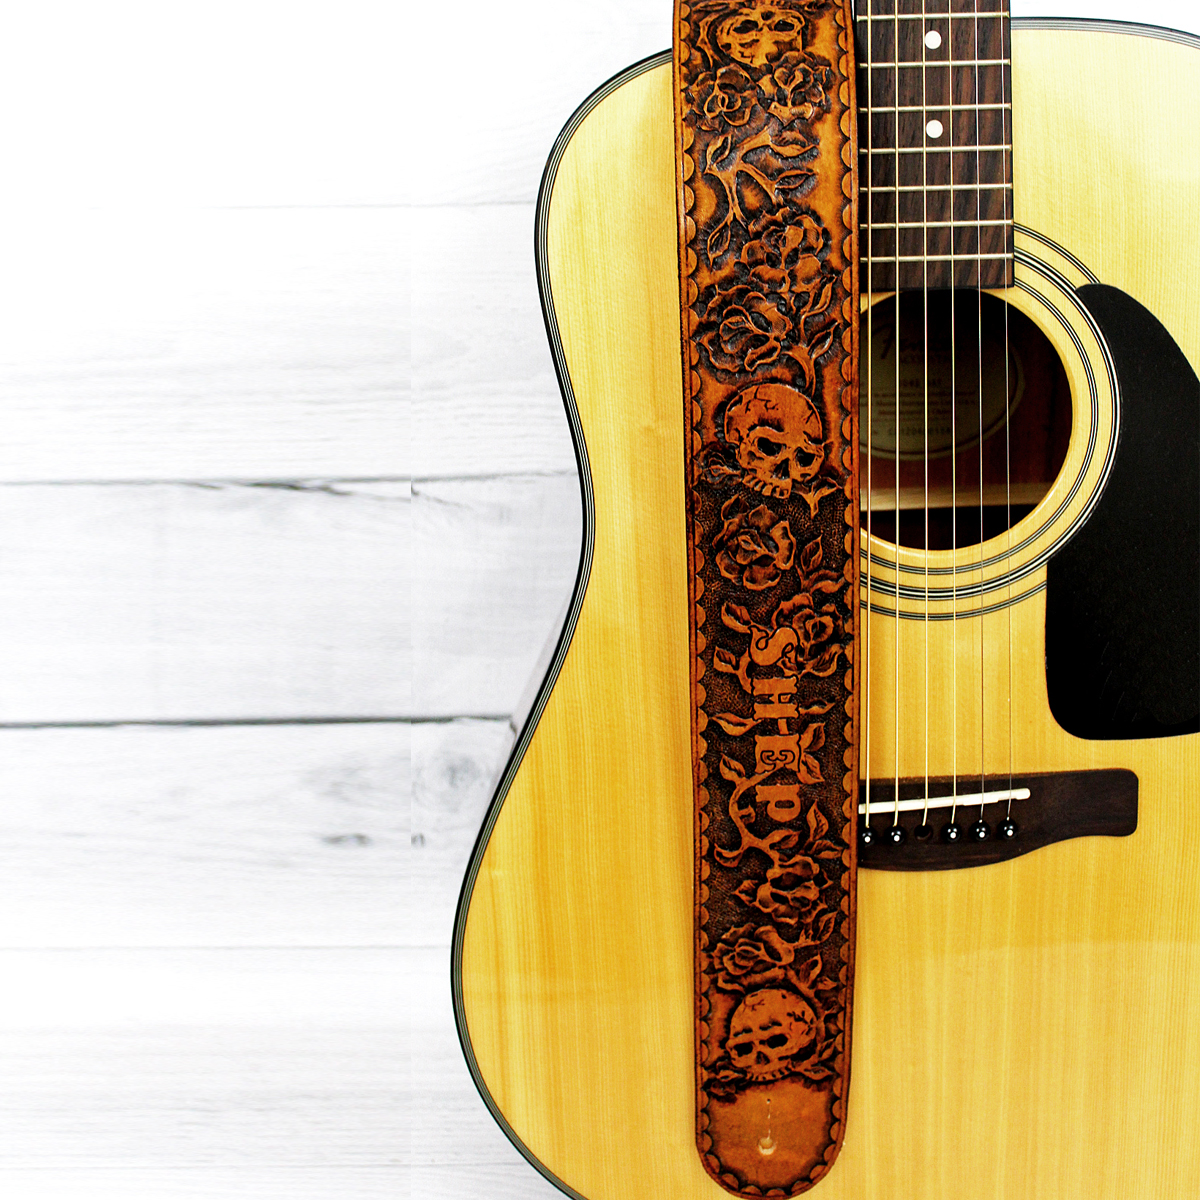 roses-and-skulls-leather-guitar-strap-with-name-the-leather-smithy_1